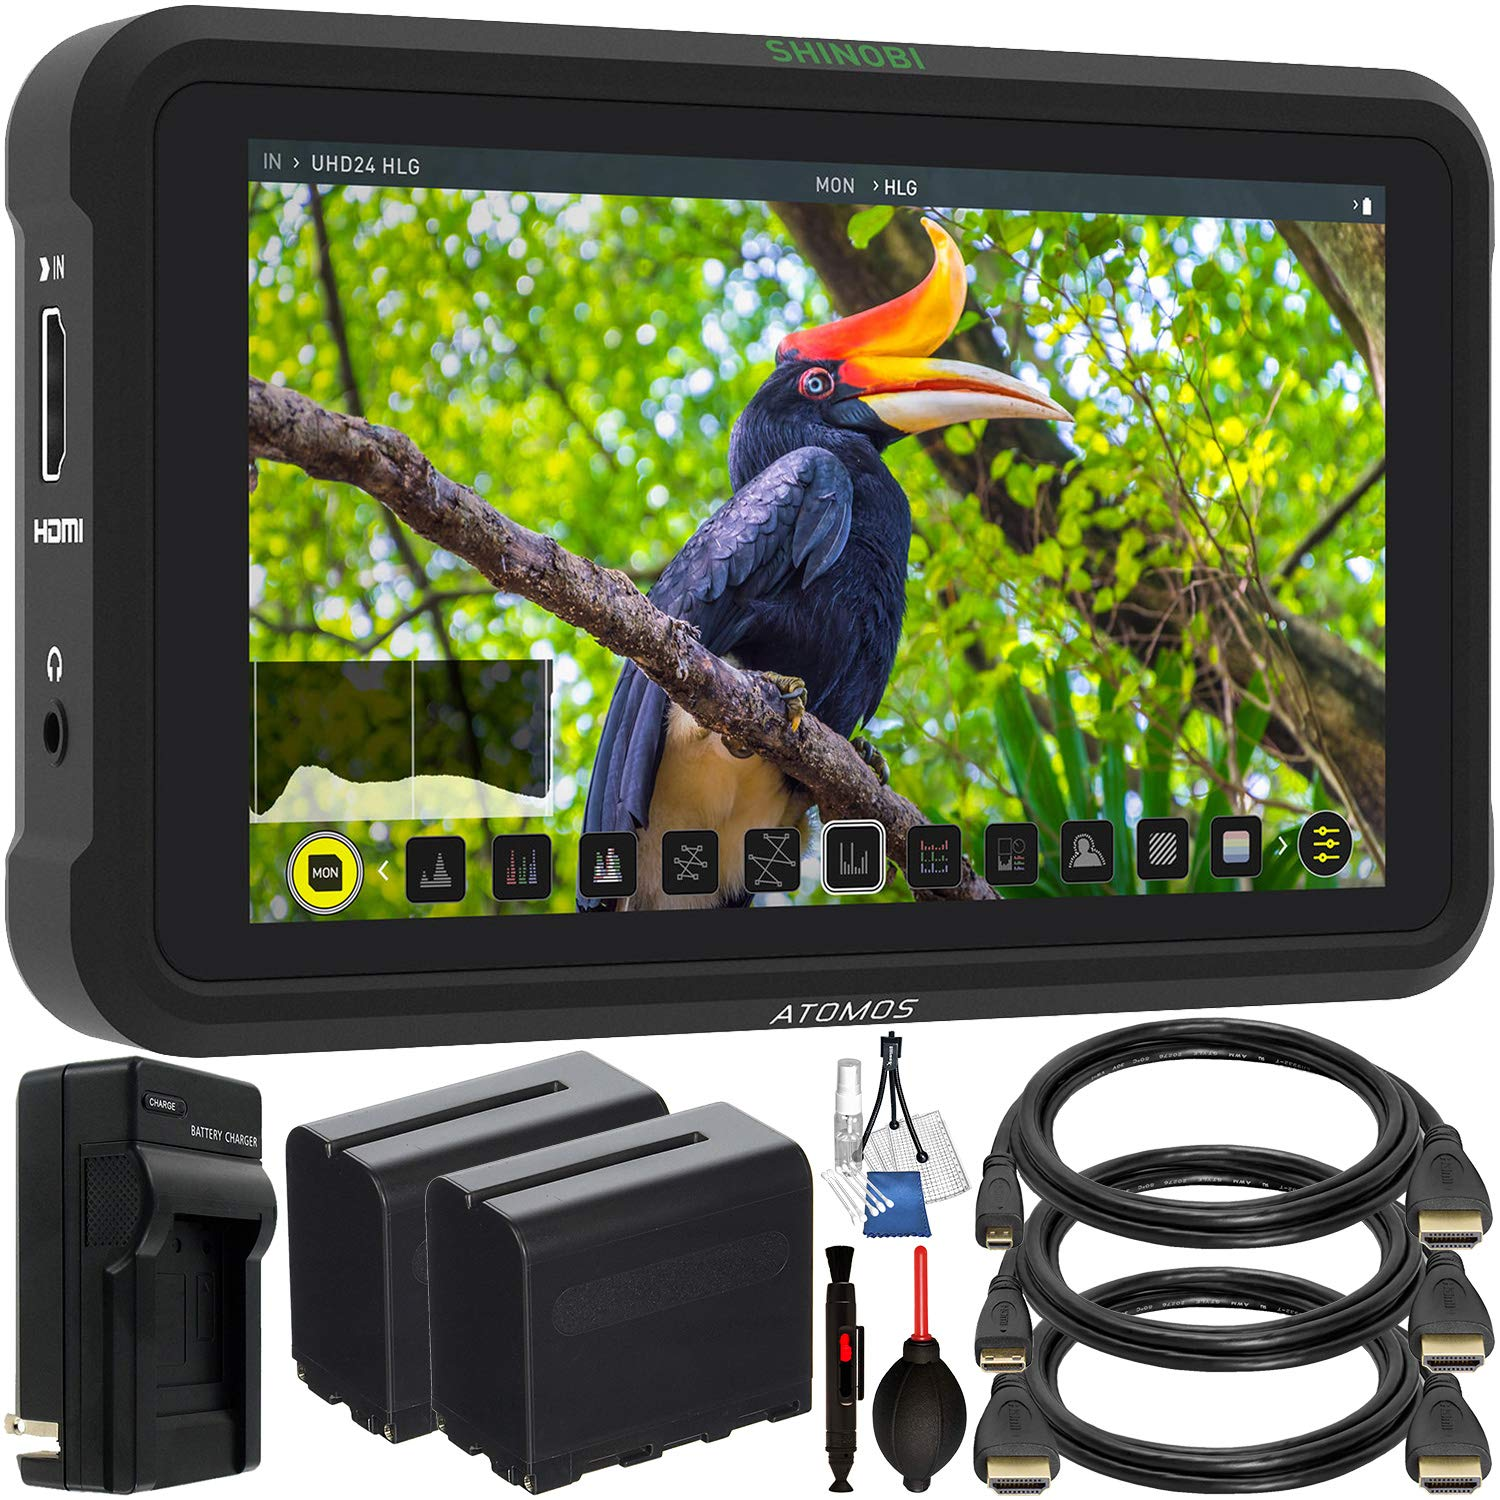 """Atomos Shinobi 5.2"""" 4K HDMI Monitor with Starter Accessory Bundle – Includes: 2X Extended Life NP-F975 L-Series Batteries with Charger, Standard, Mini & Micro HDMI Cables, Starter Cleaning Kit & More"""